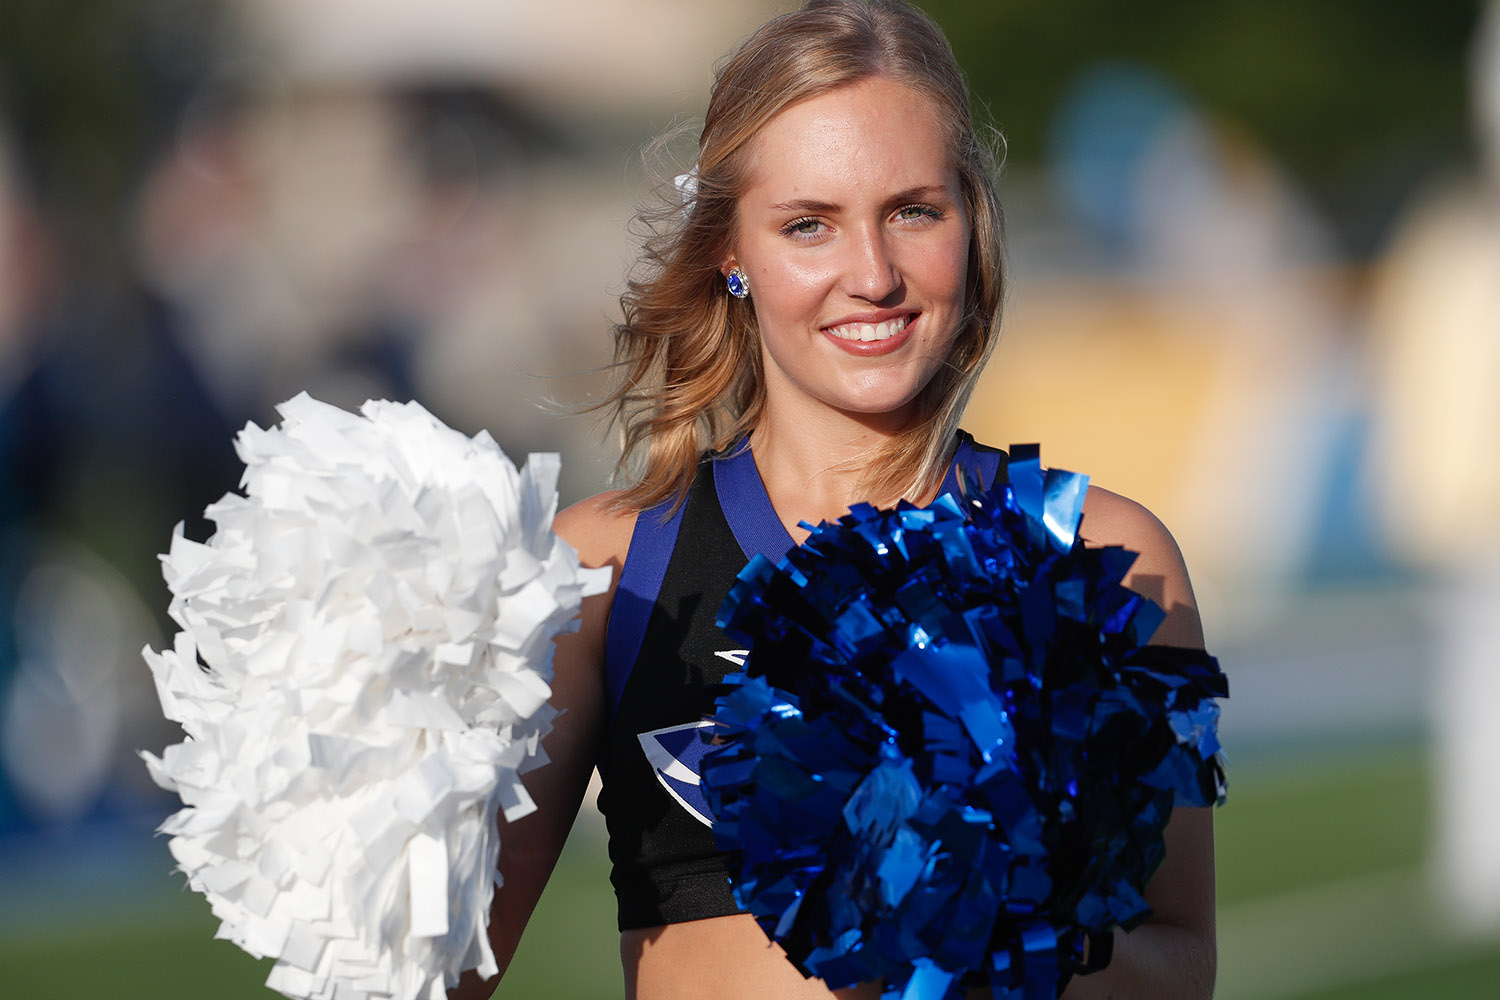 UNK cheerleader Emily Petersen hopes to put on a different uniform when she graduates from college. The Omaha native is training to be an officer in the U.S. Marine Corps.